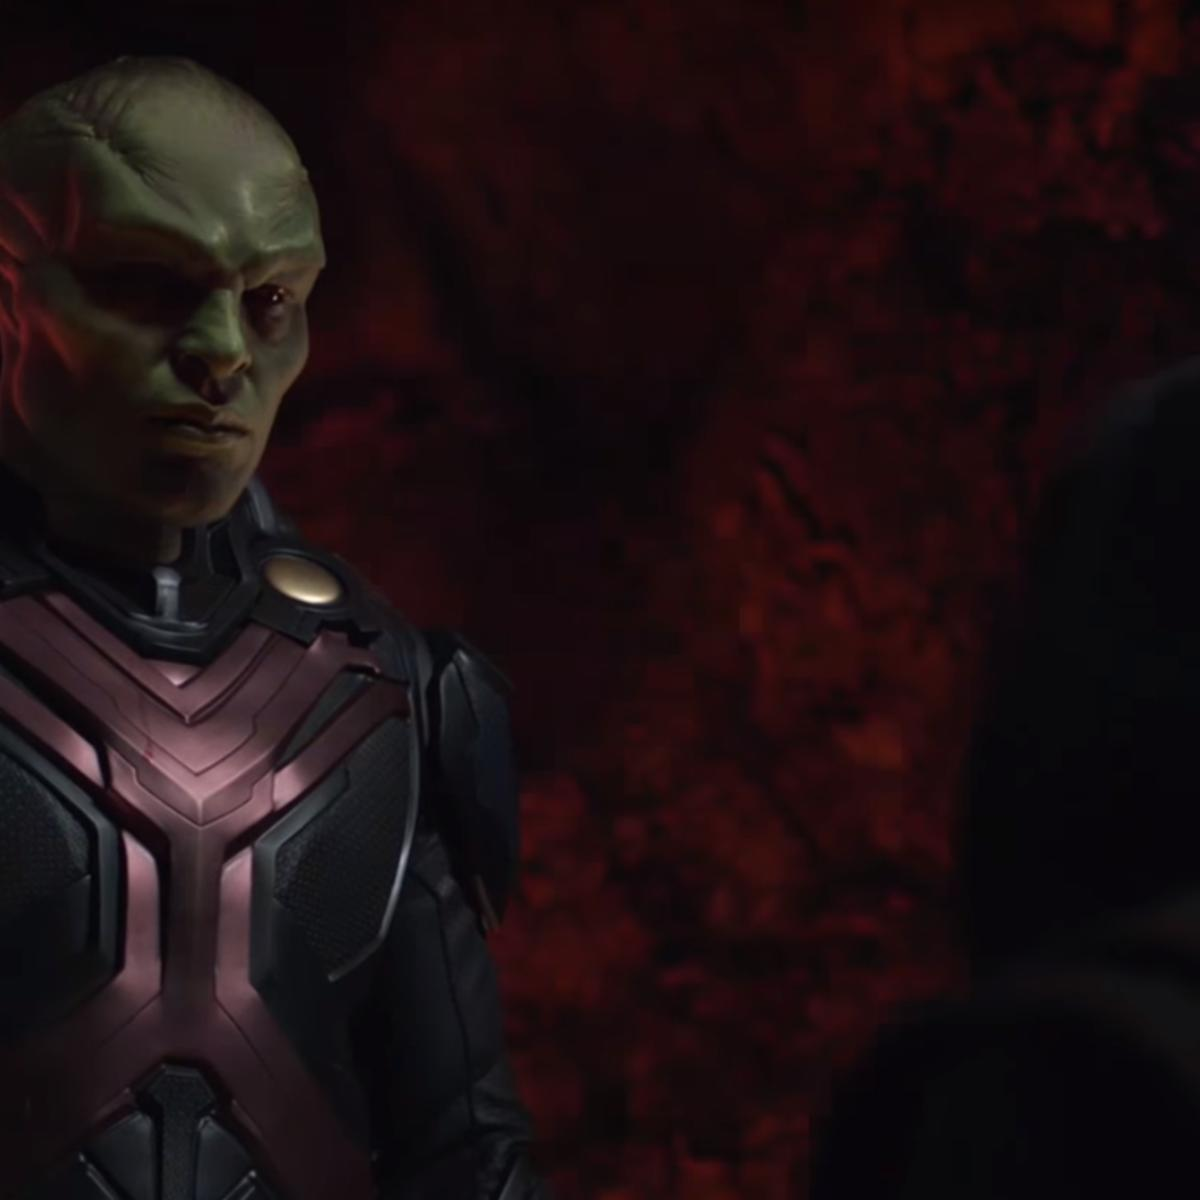 supergirl-303-trailer-screengrab-syfywire.png